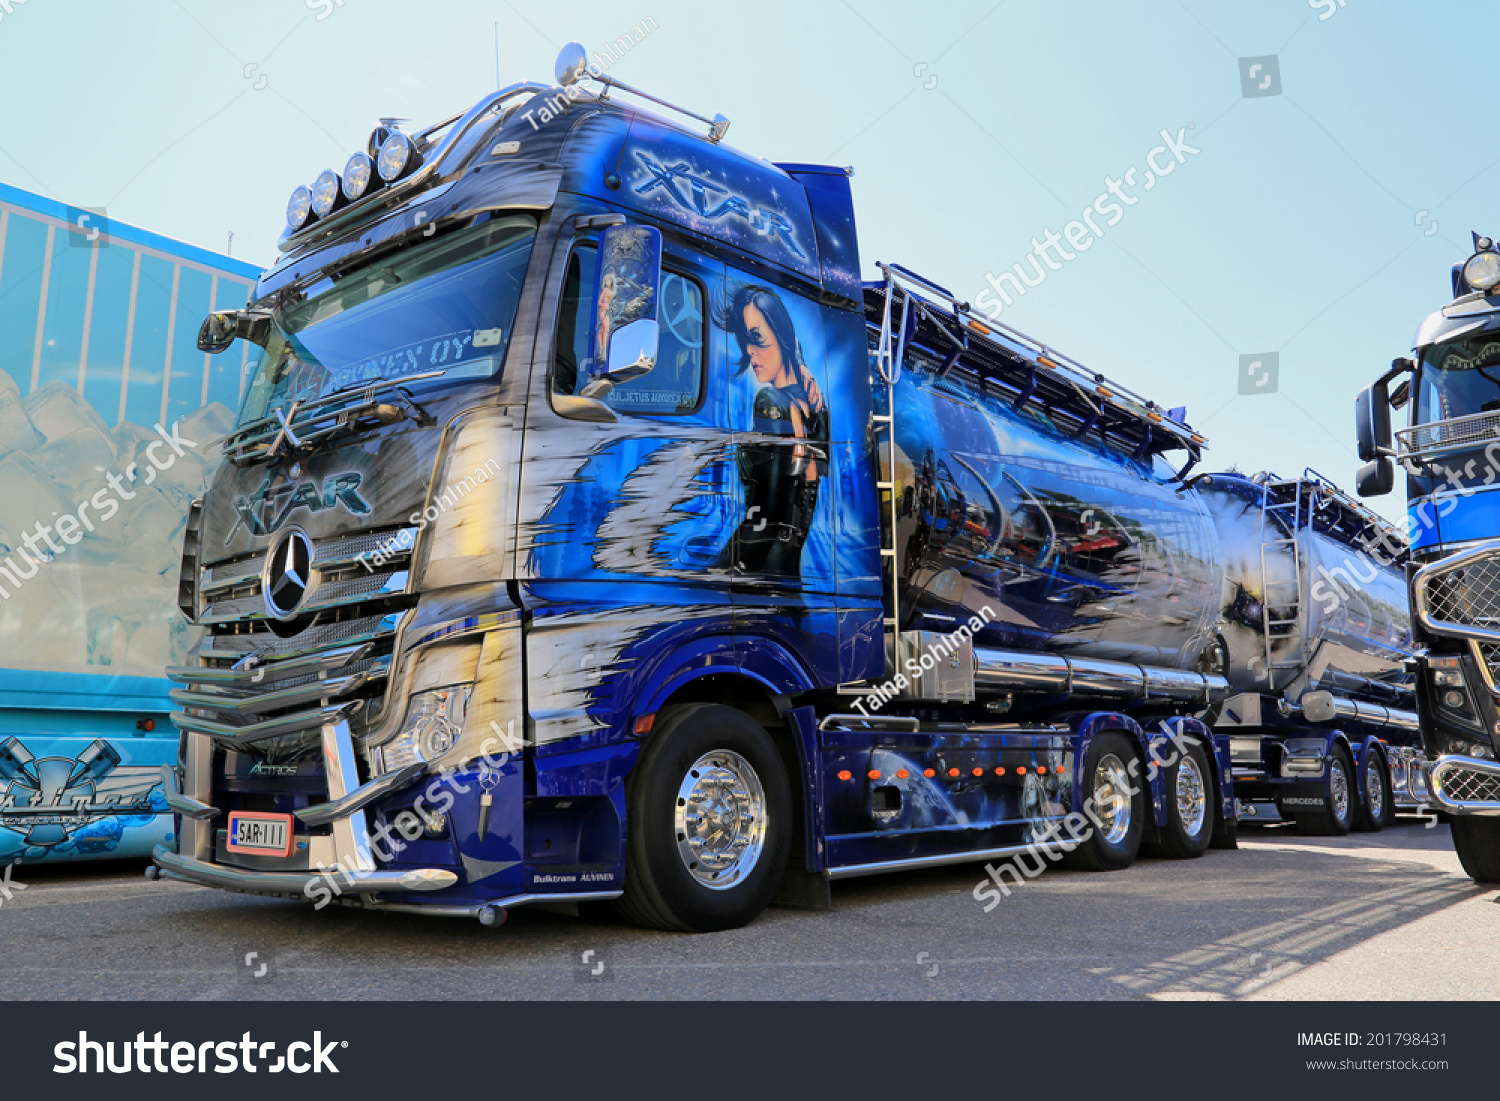 Porvoo finland june 28 2014 mercedesbenz stock photo for 2014 mercedes benz truck